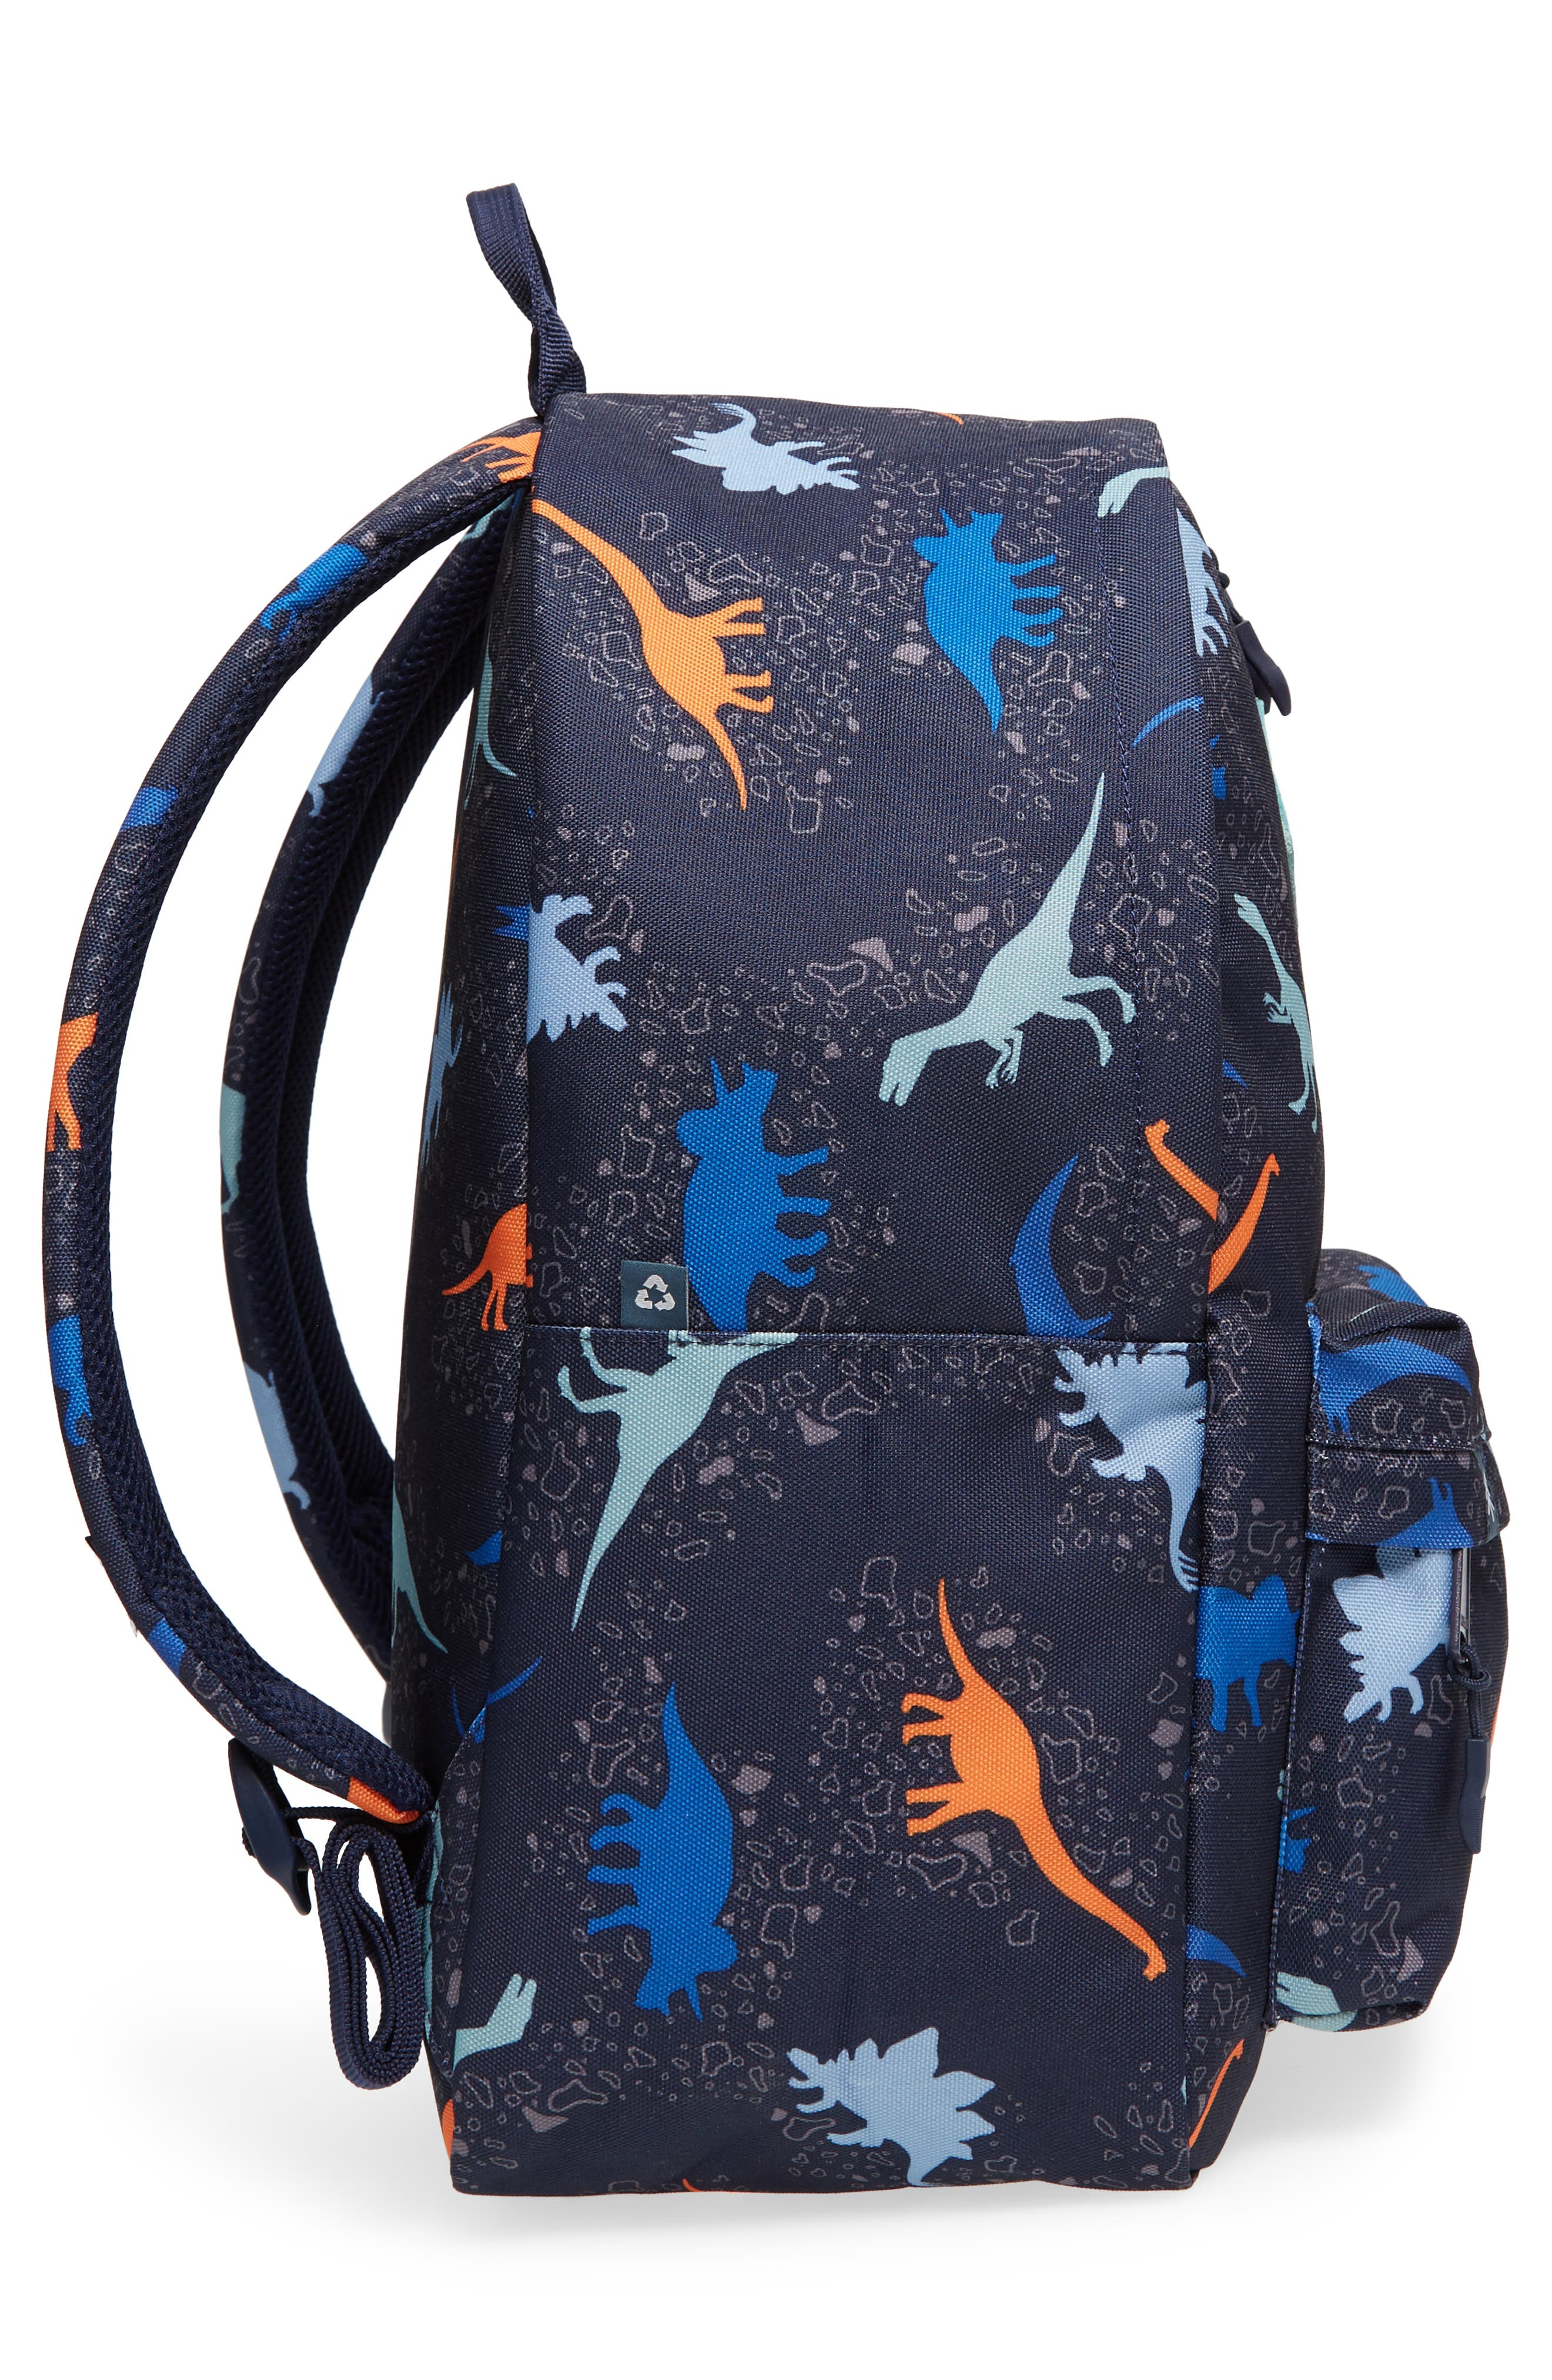 Bayside Print Backpack,                             Alternate thumbnail 4, color,                             200